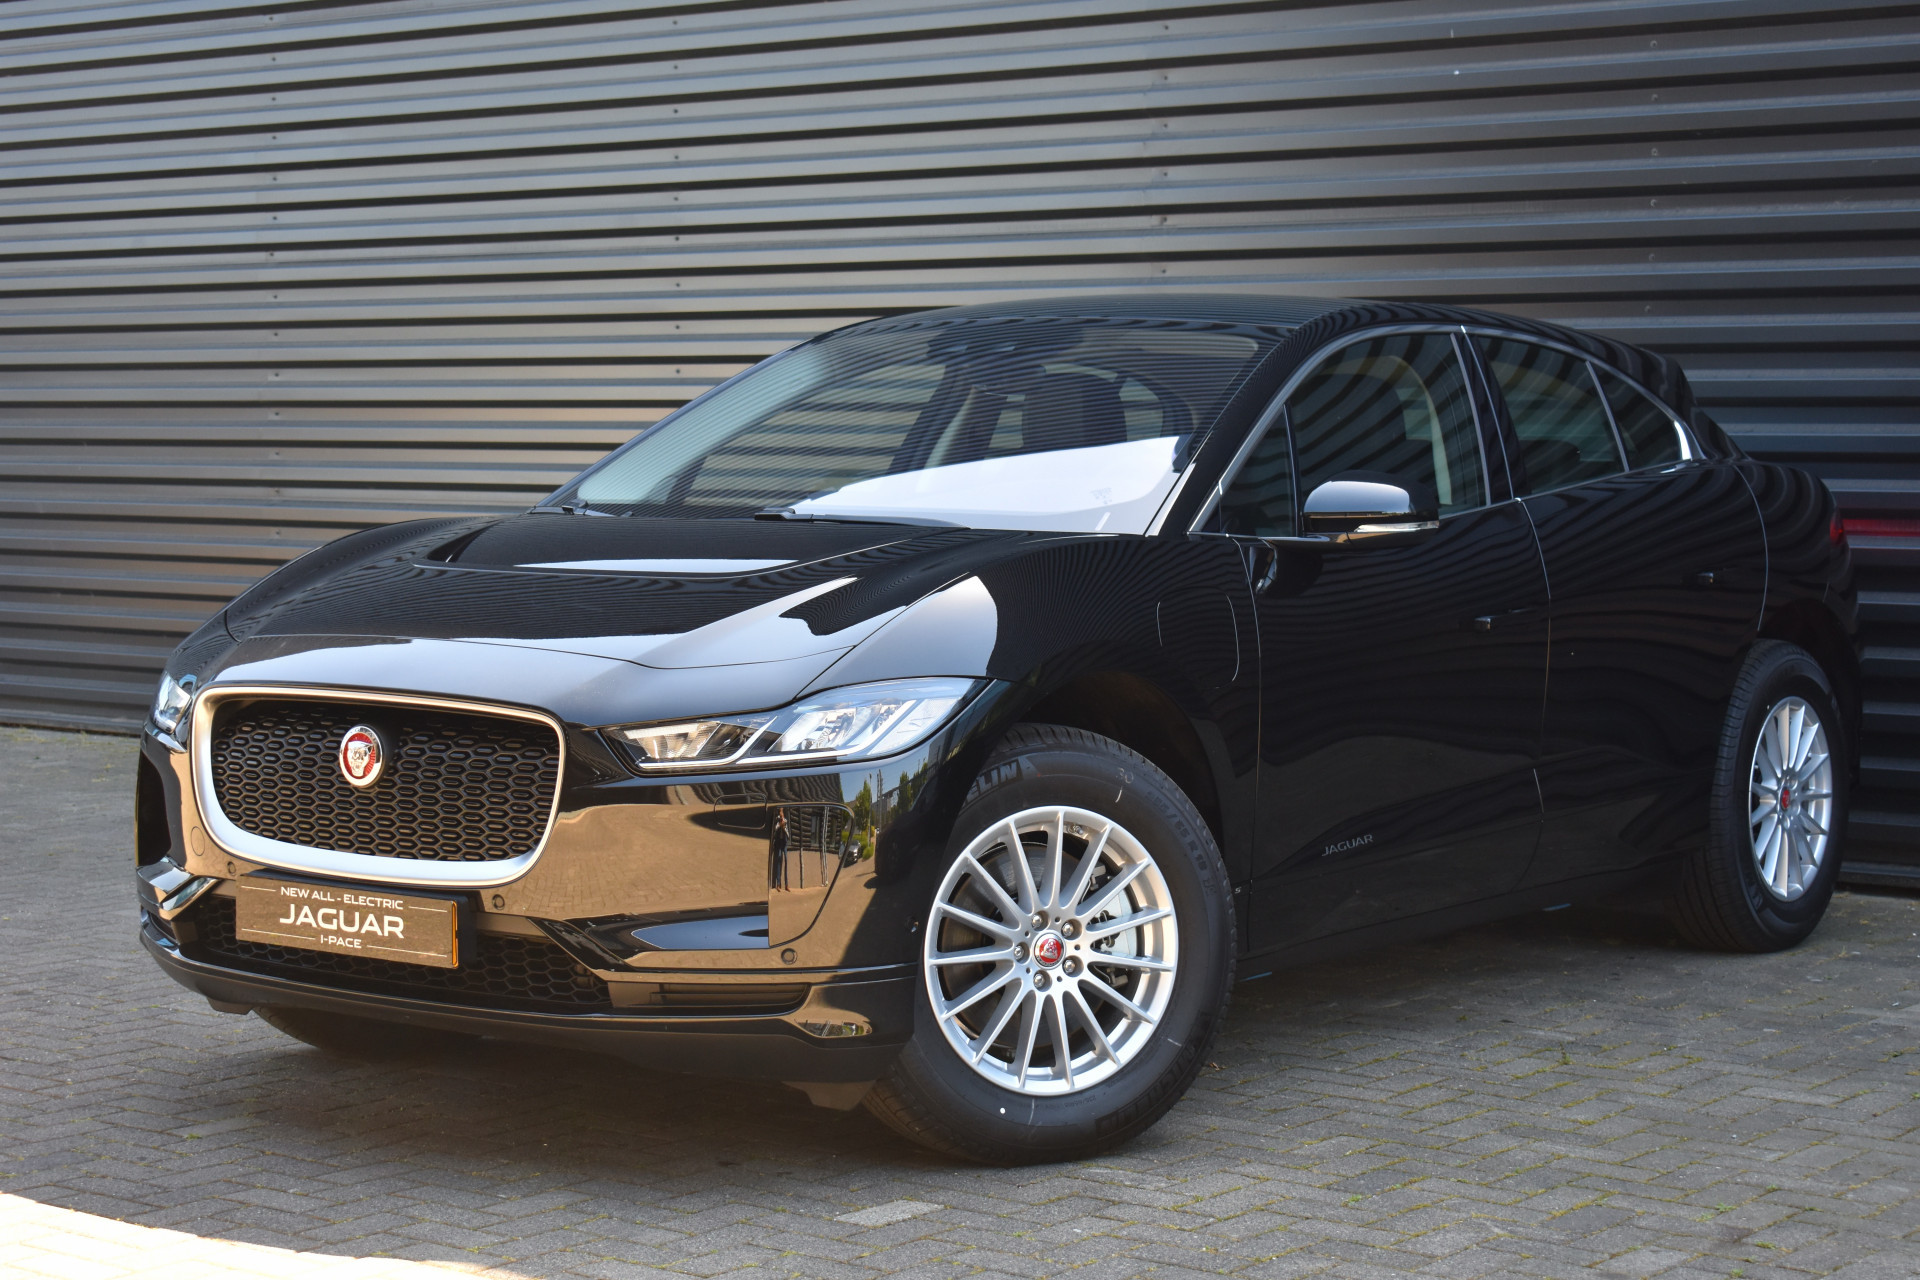 Jaguar I-PACE EV400 Business Edition S - Afbeelding 1